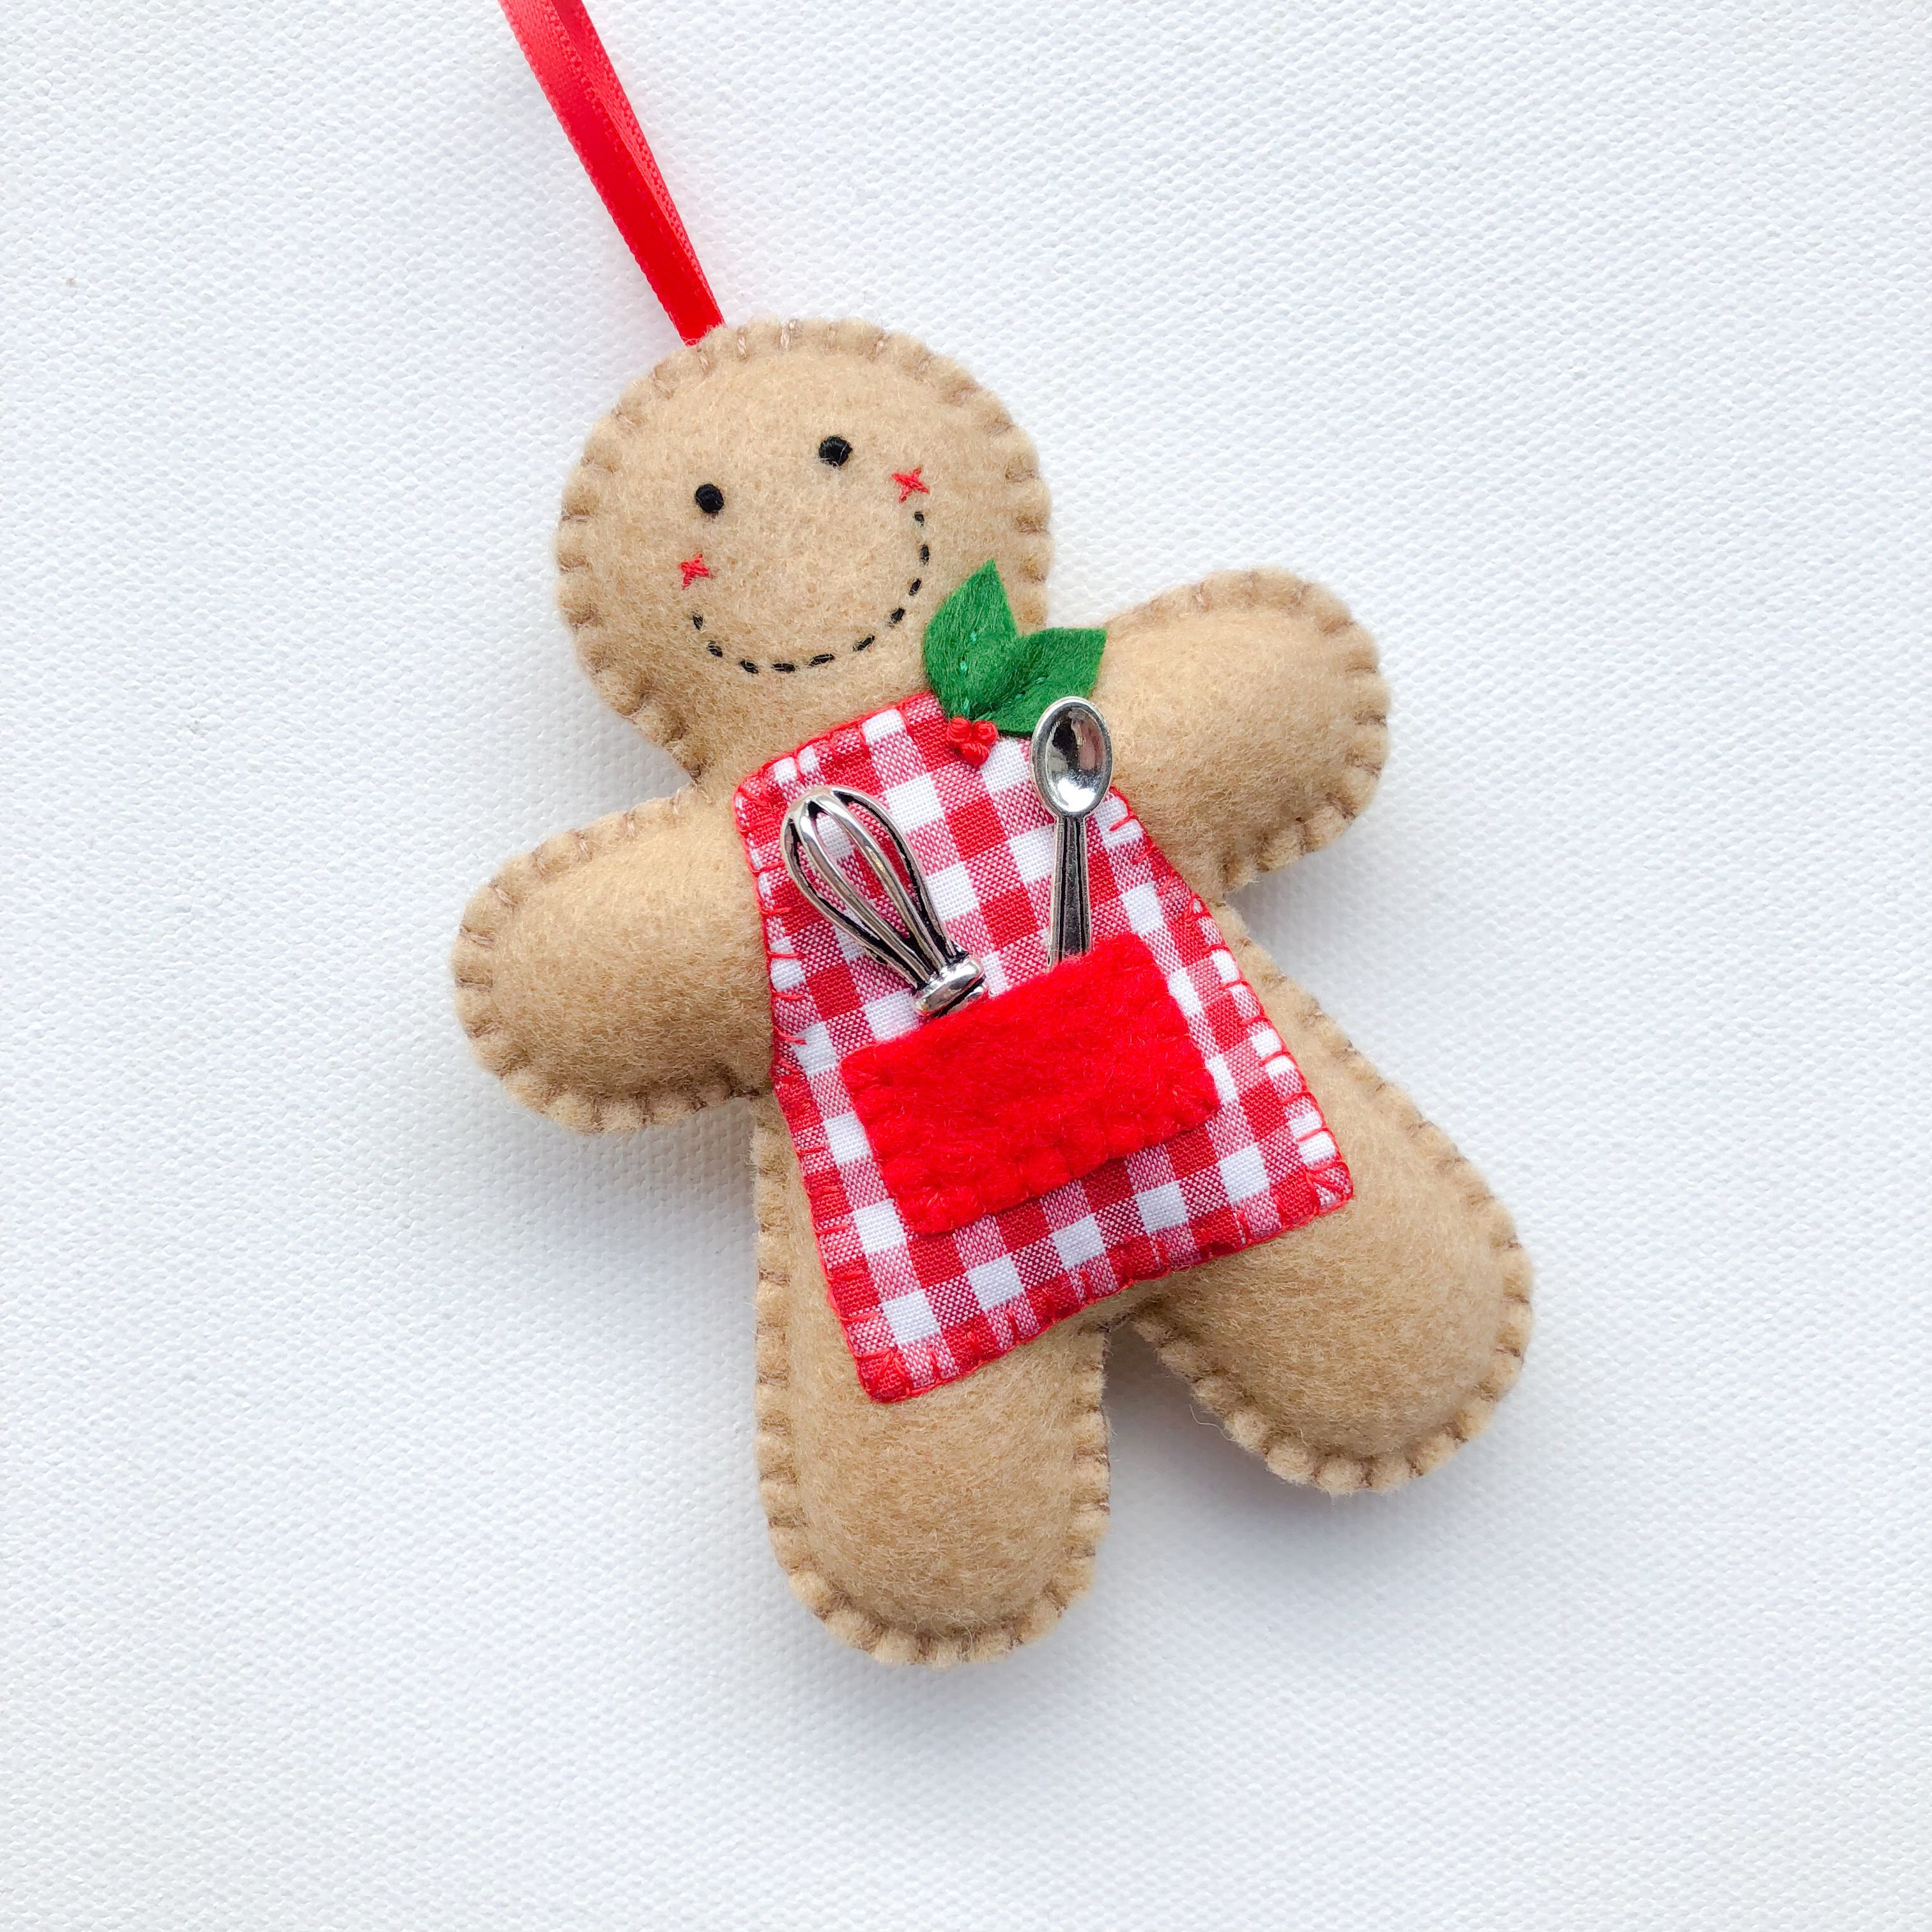 Hand Stitched Felt Gingerbread Man Ornament Felt Crafts